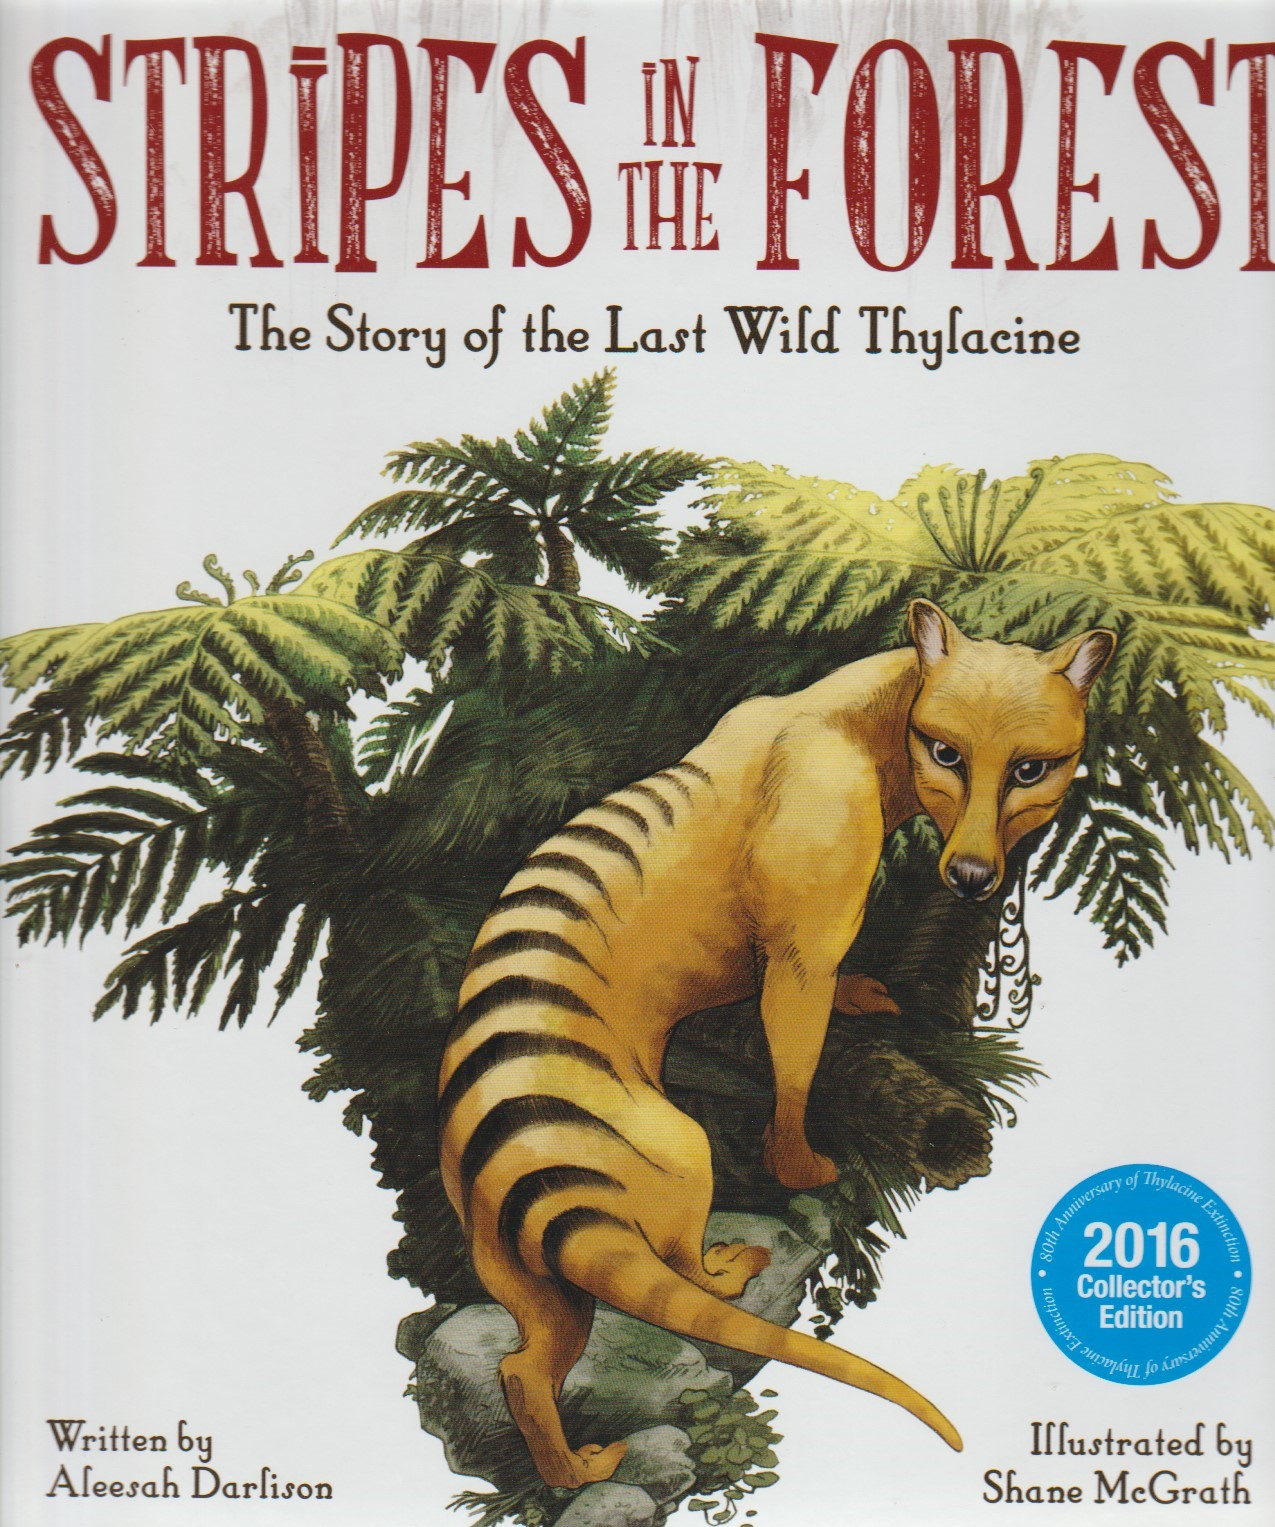 Stripes in the Forest - a thylacine story